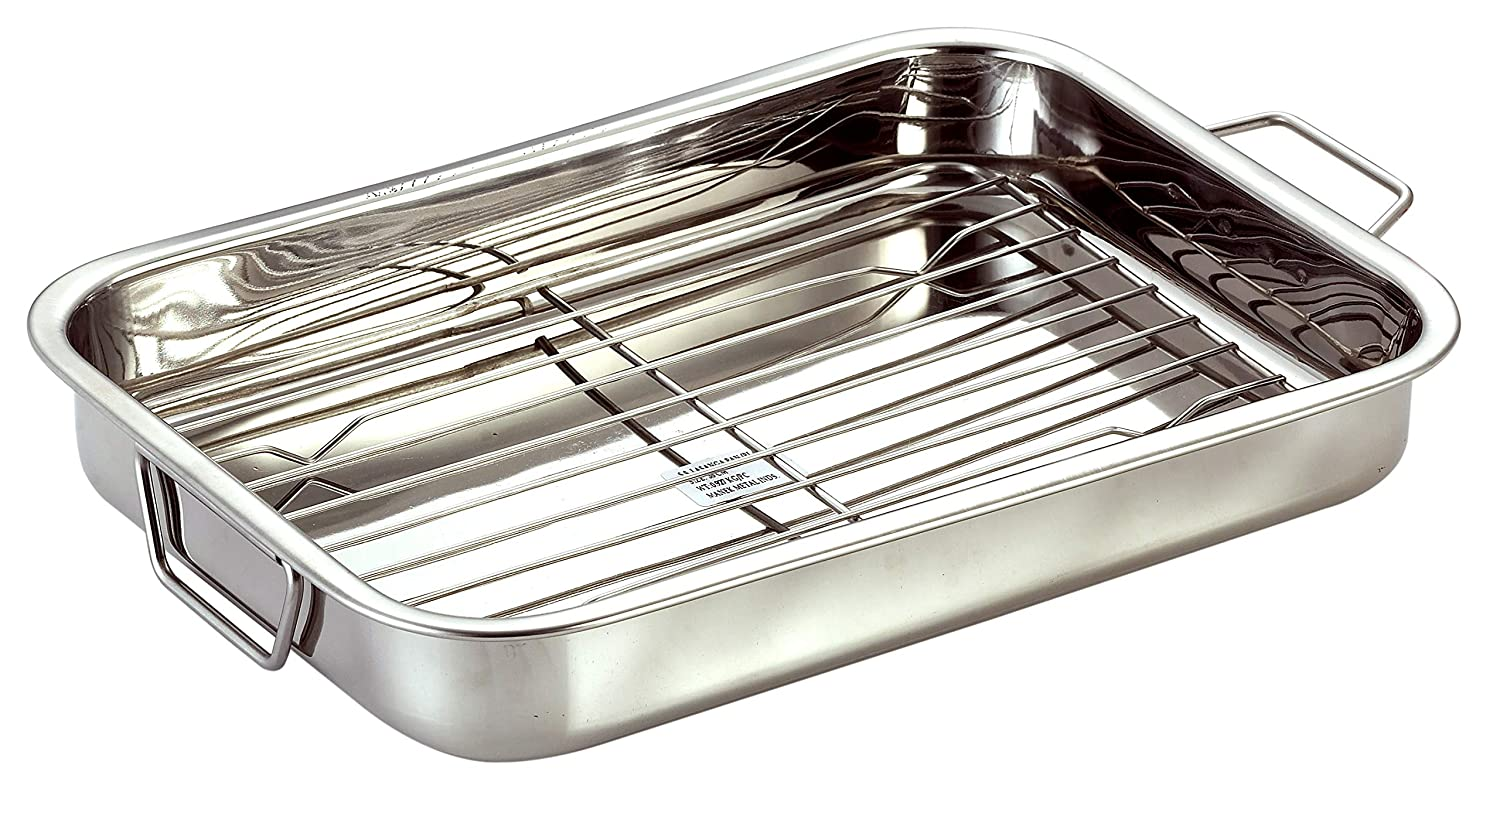 Stainless Steel Roast Pan with Grill Rack & Folding Handles // CHEF DIRECT // Rectangular Lasagna Pan for Baking, Grilling, Roasting // OTG Oven Safe (With Grill Roasting Rack (40cm X 28cm))